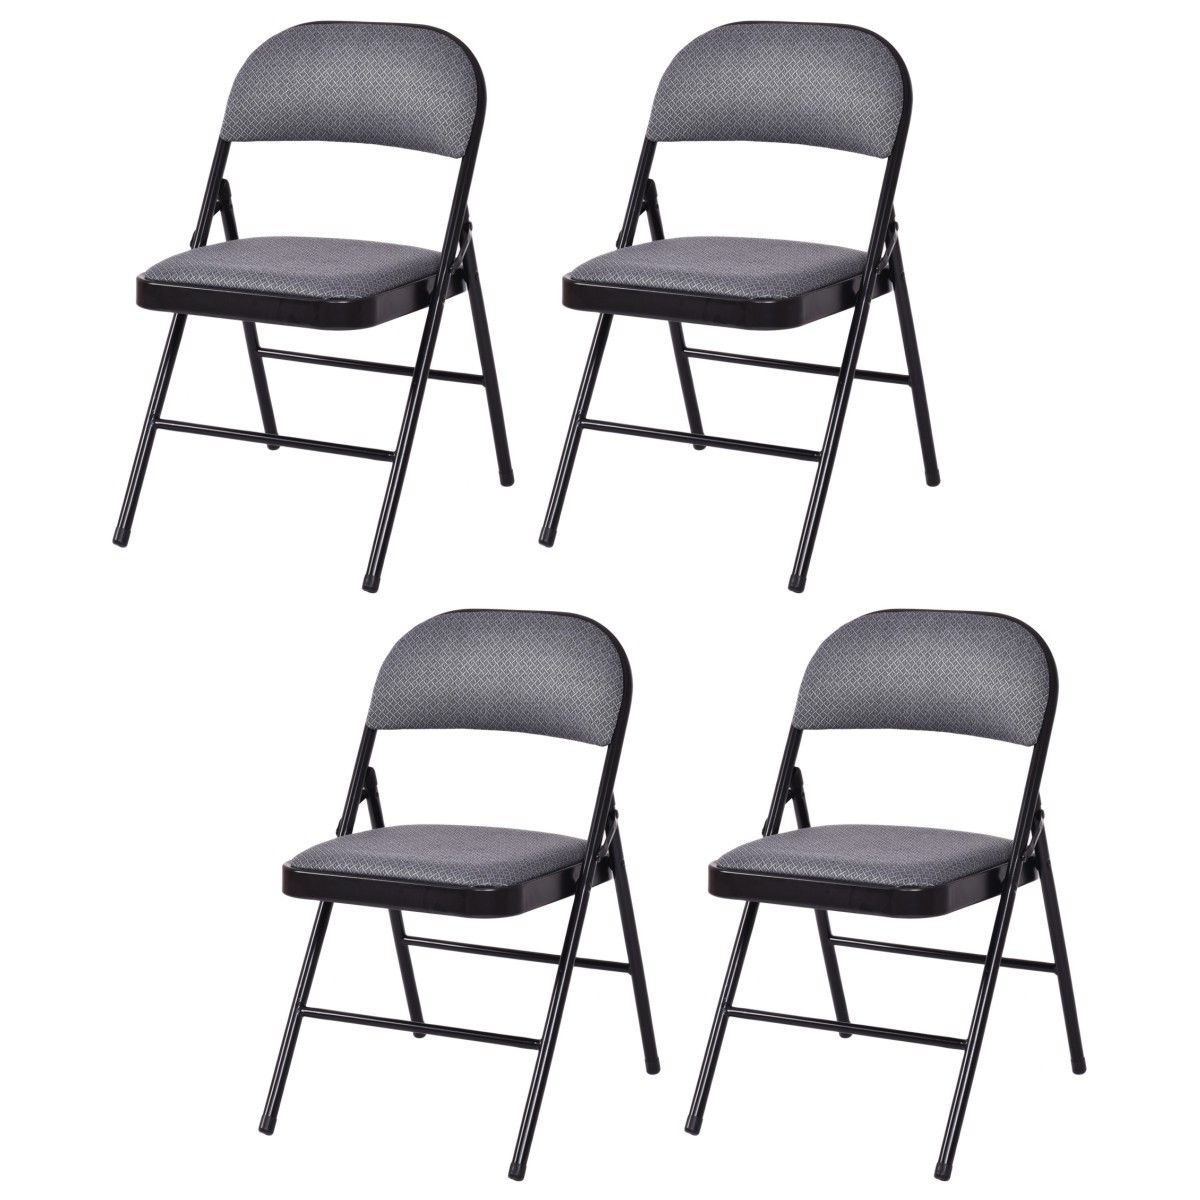 Costway Set of 4 Folding Chairs Fabric Upholstered Padded Seat Metal Frame Home Office